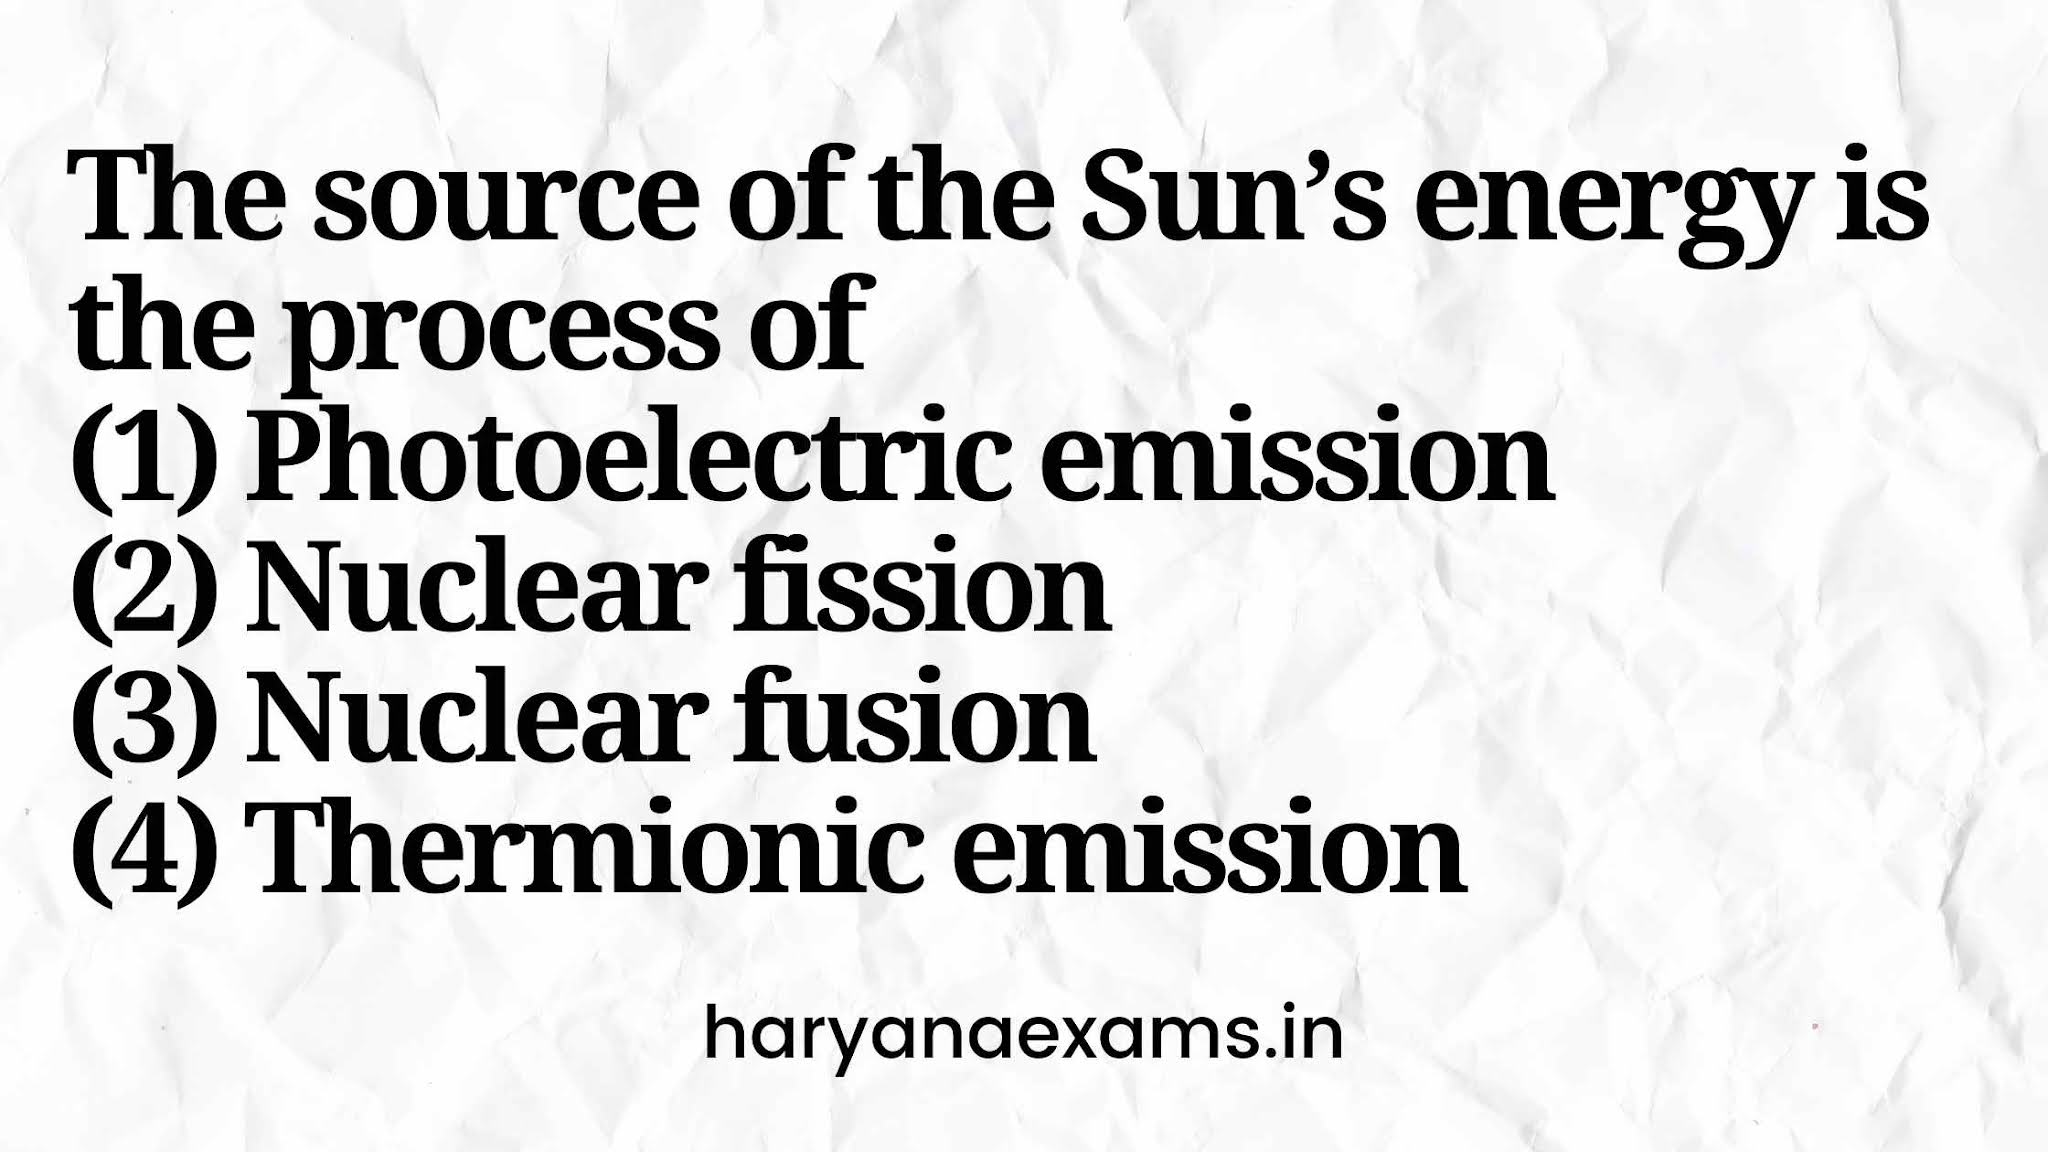 The source of the Sun's energy is the process of   (1) Photoelectric emission   (2) Nuclear fission   (3) Nuclear fusion   (4) Thermionic emission